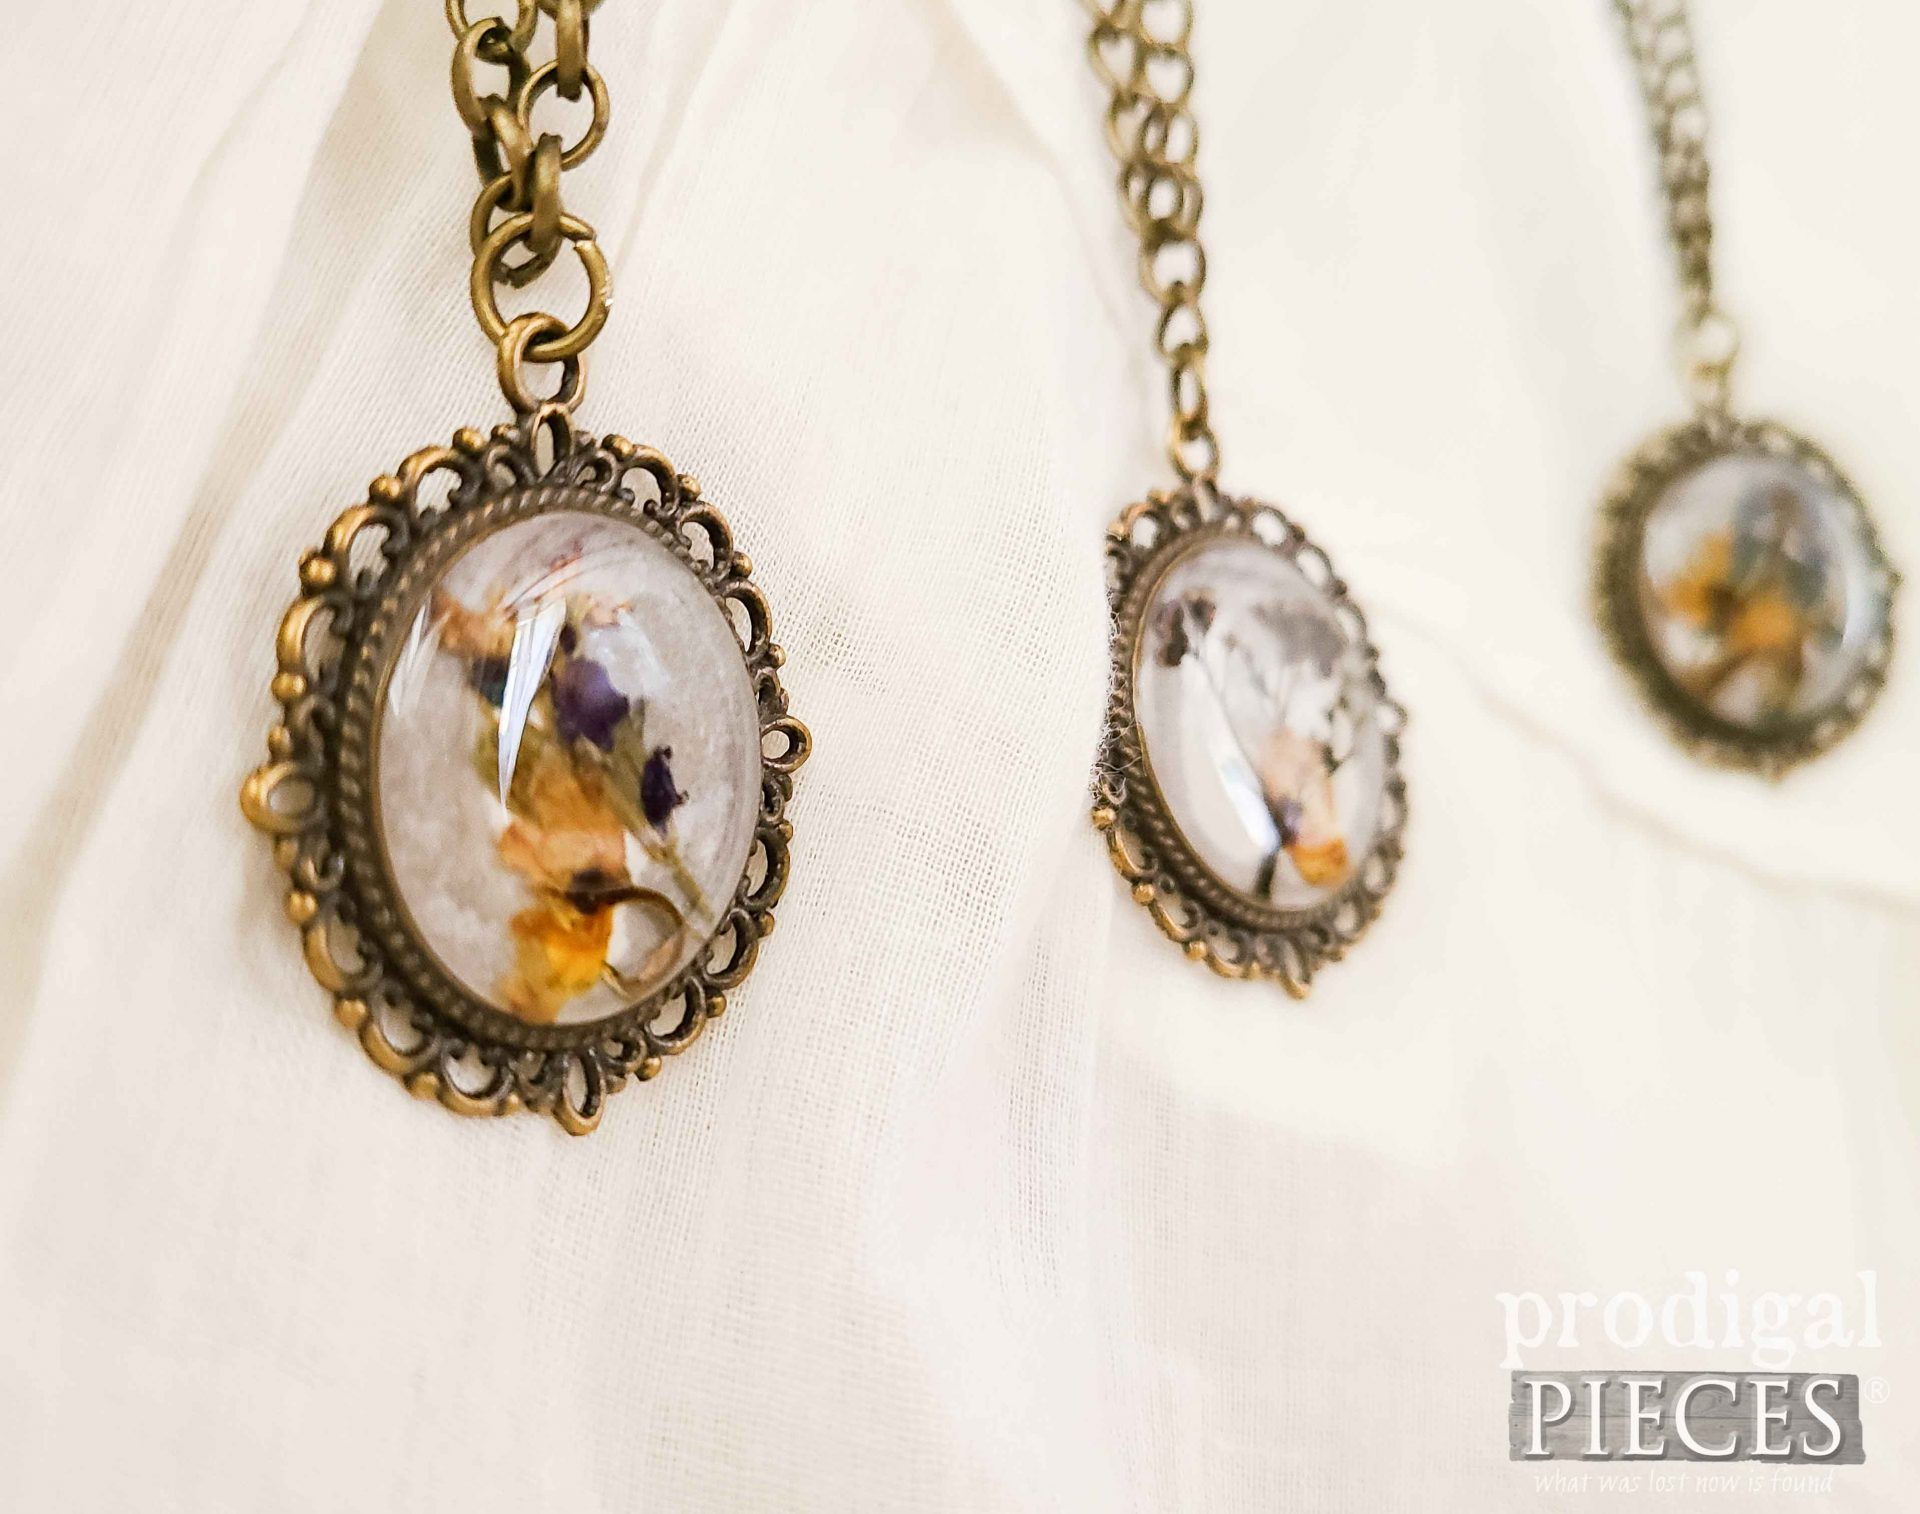 Dried Flower Resin Pendant for Necklace by Larissa of Prodigal Pieces   prodigalpieces.com #prodigalpieces #crafts #diy #jewelry #necklace #giftsforher